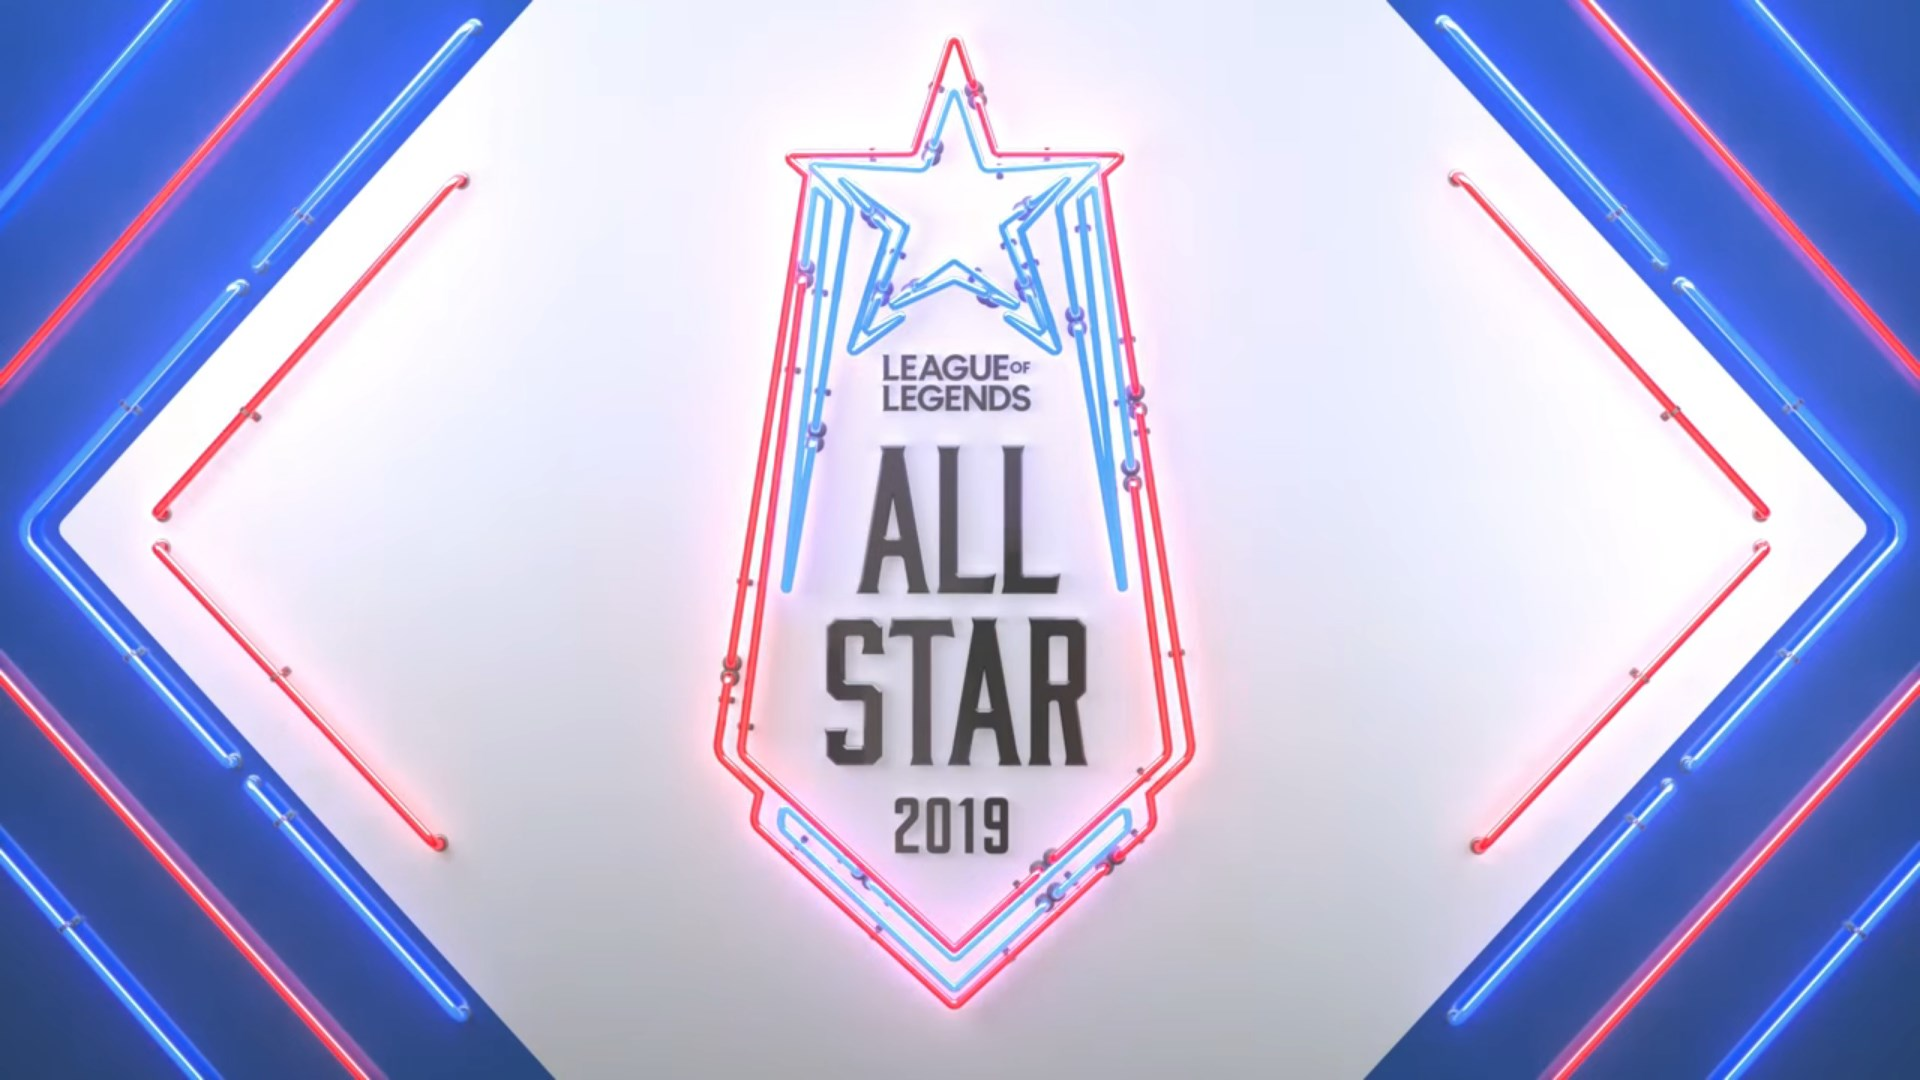 The 2019 All-Star event logo